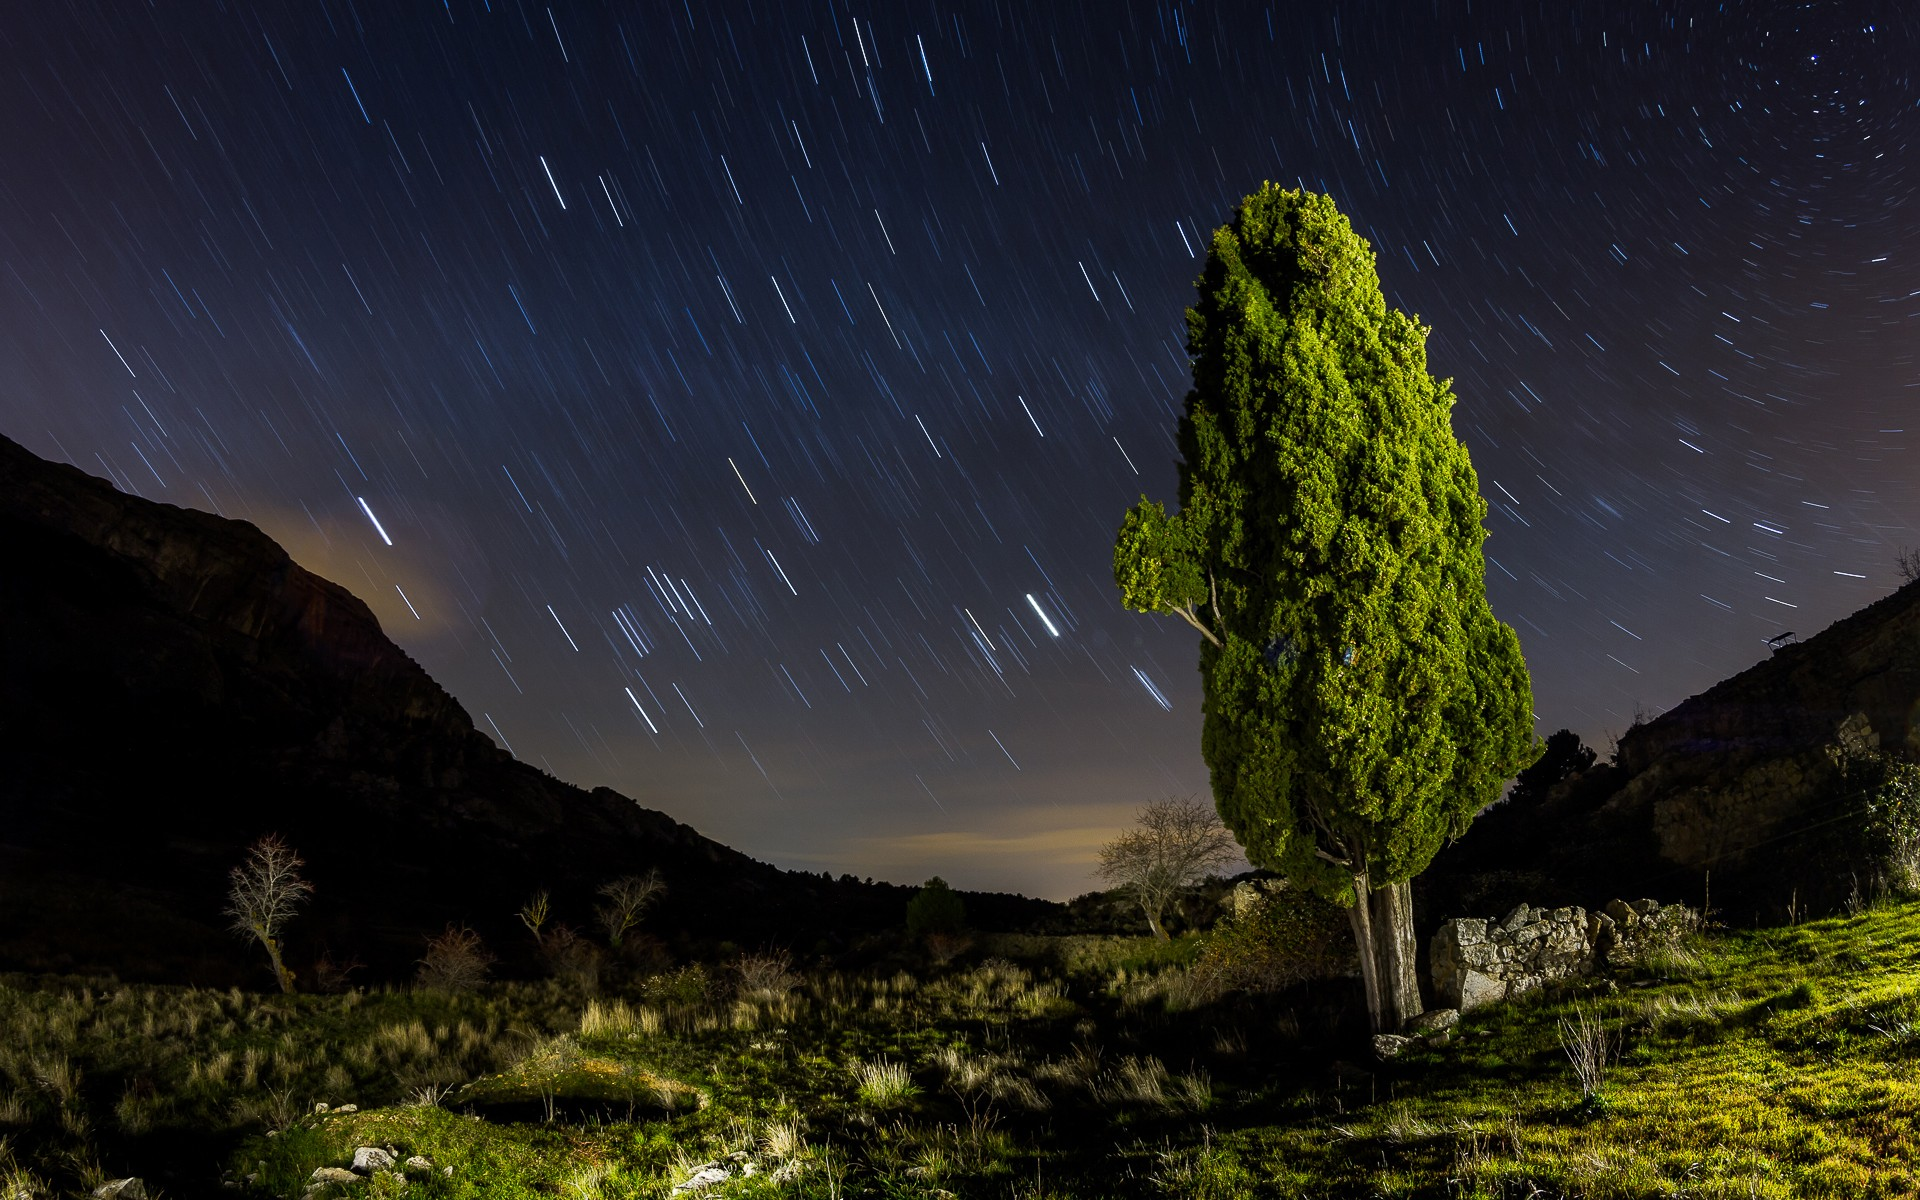 daily wallpaper: star trails at night | i like to waste my time